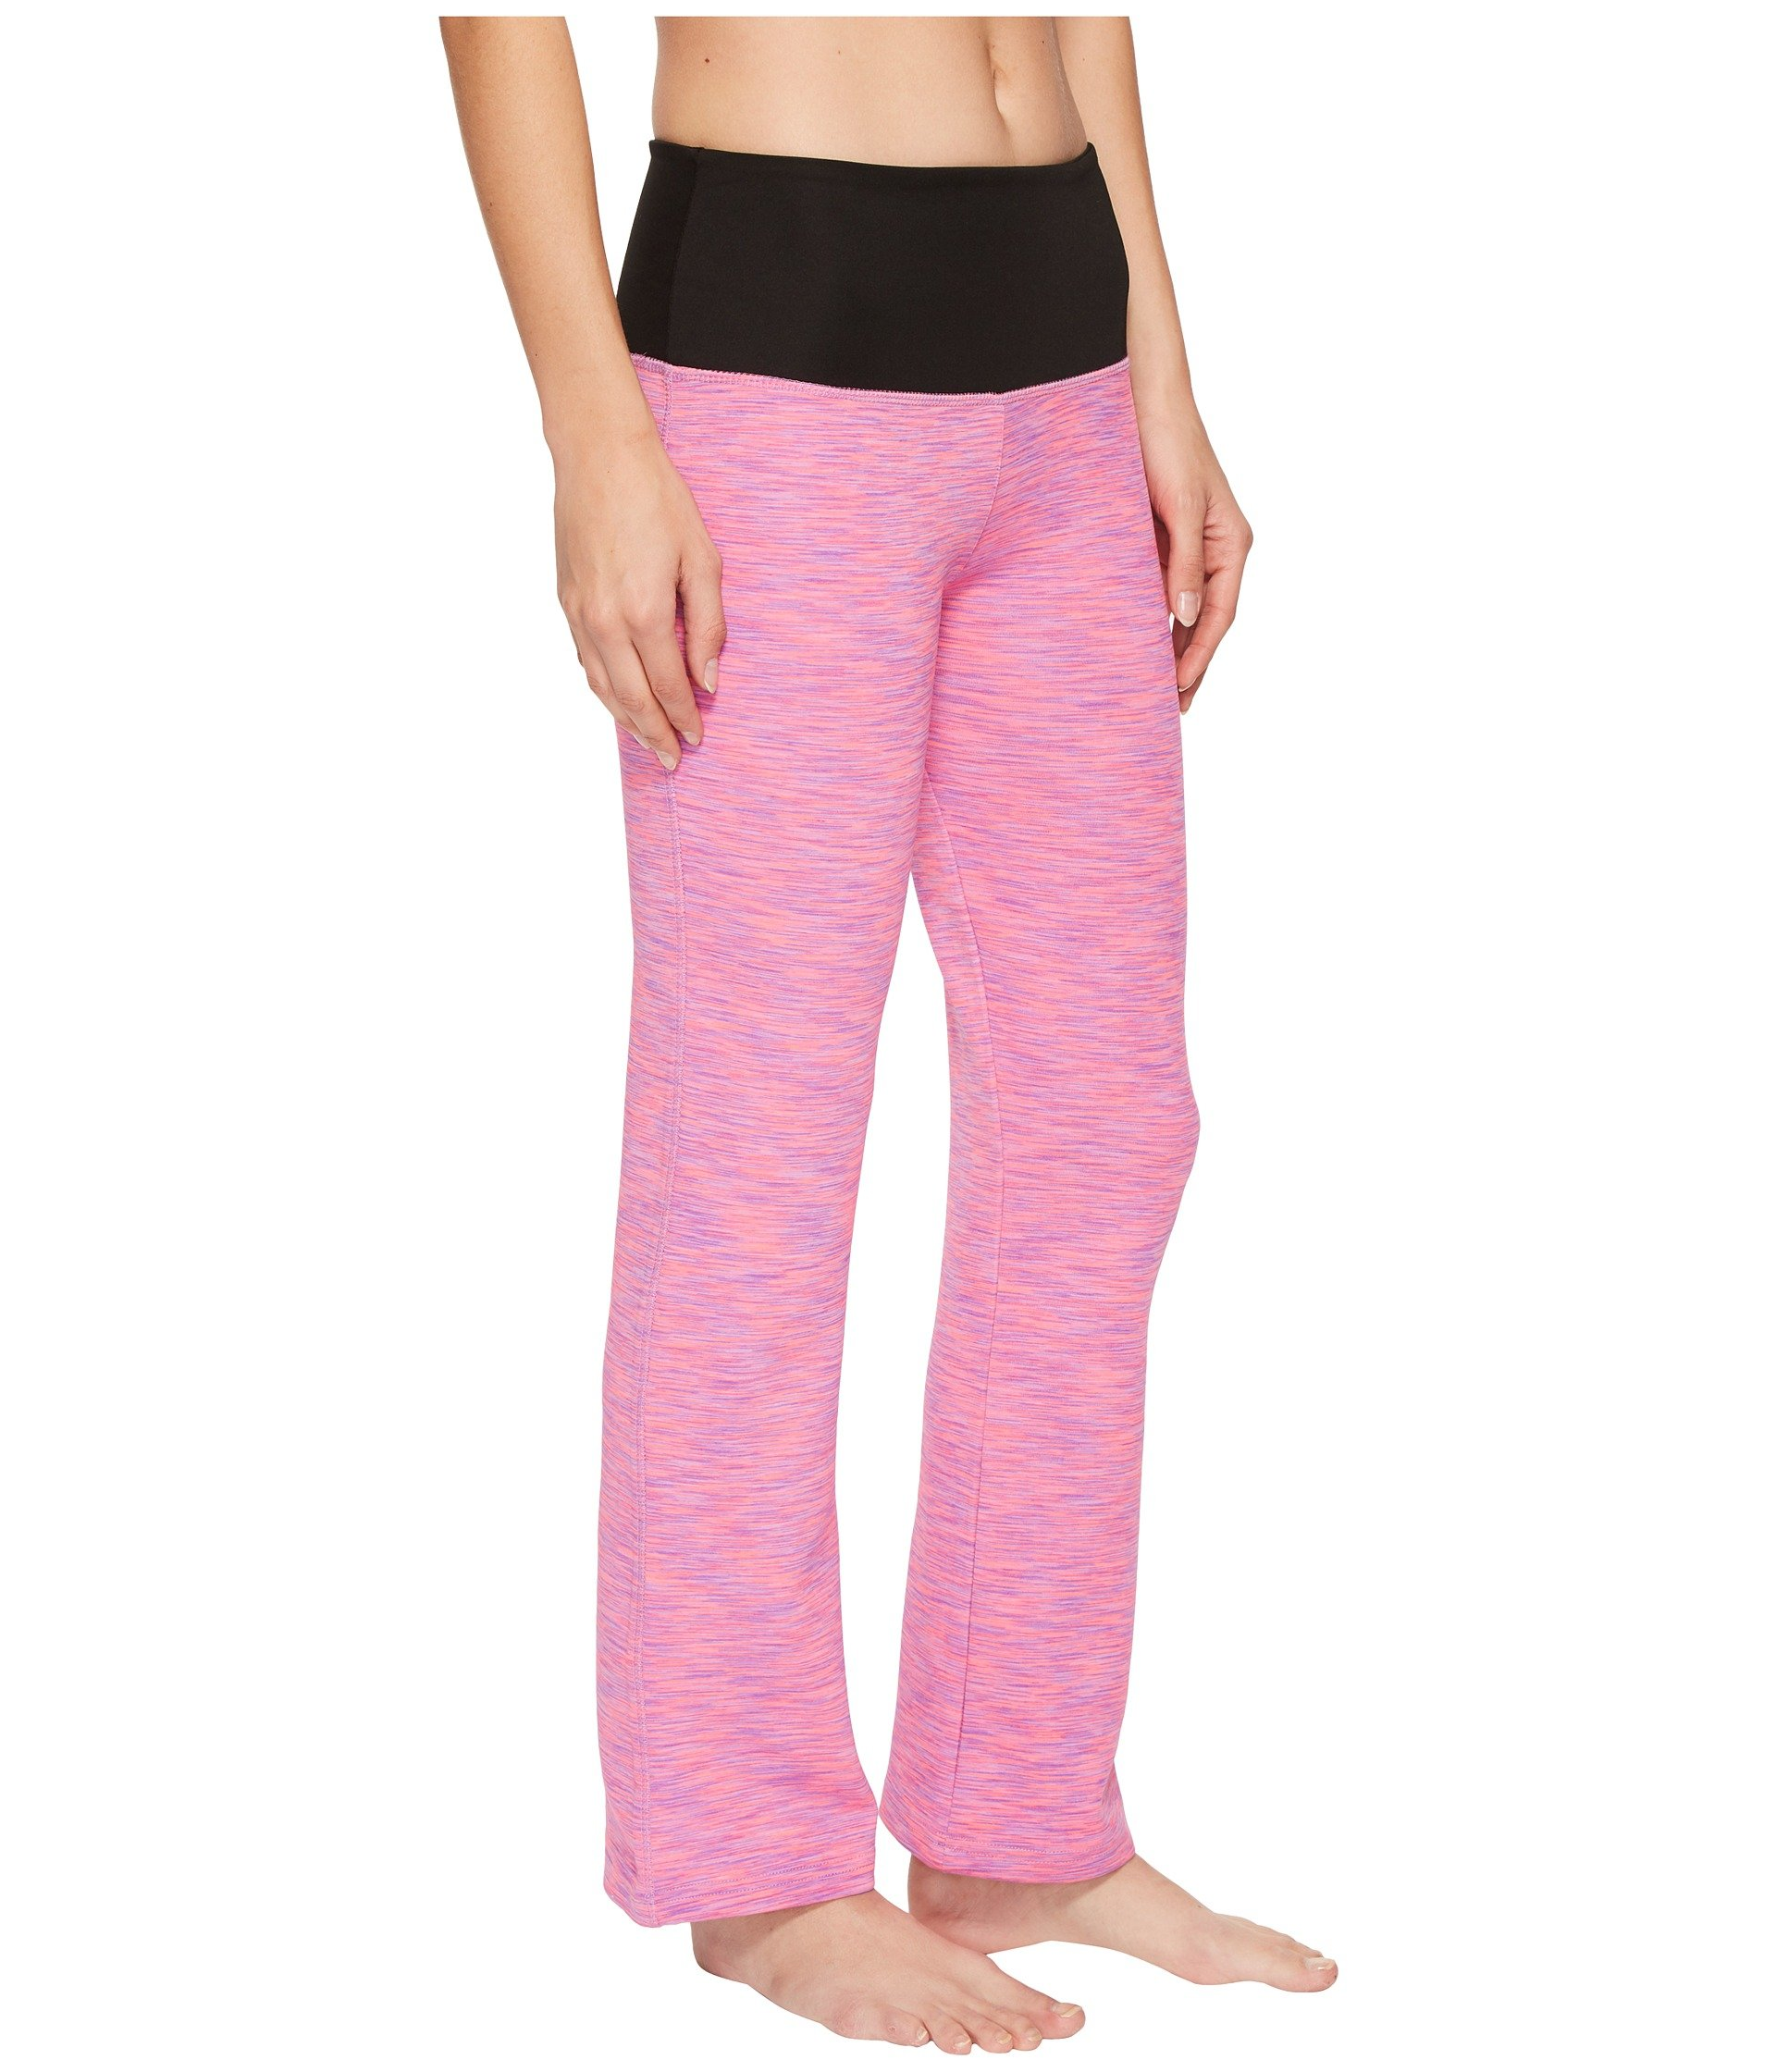 Way Bottom Pants Co Day Yoga Clothing Pink Two Independence black Flare ZqU4pP